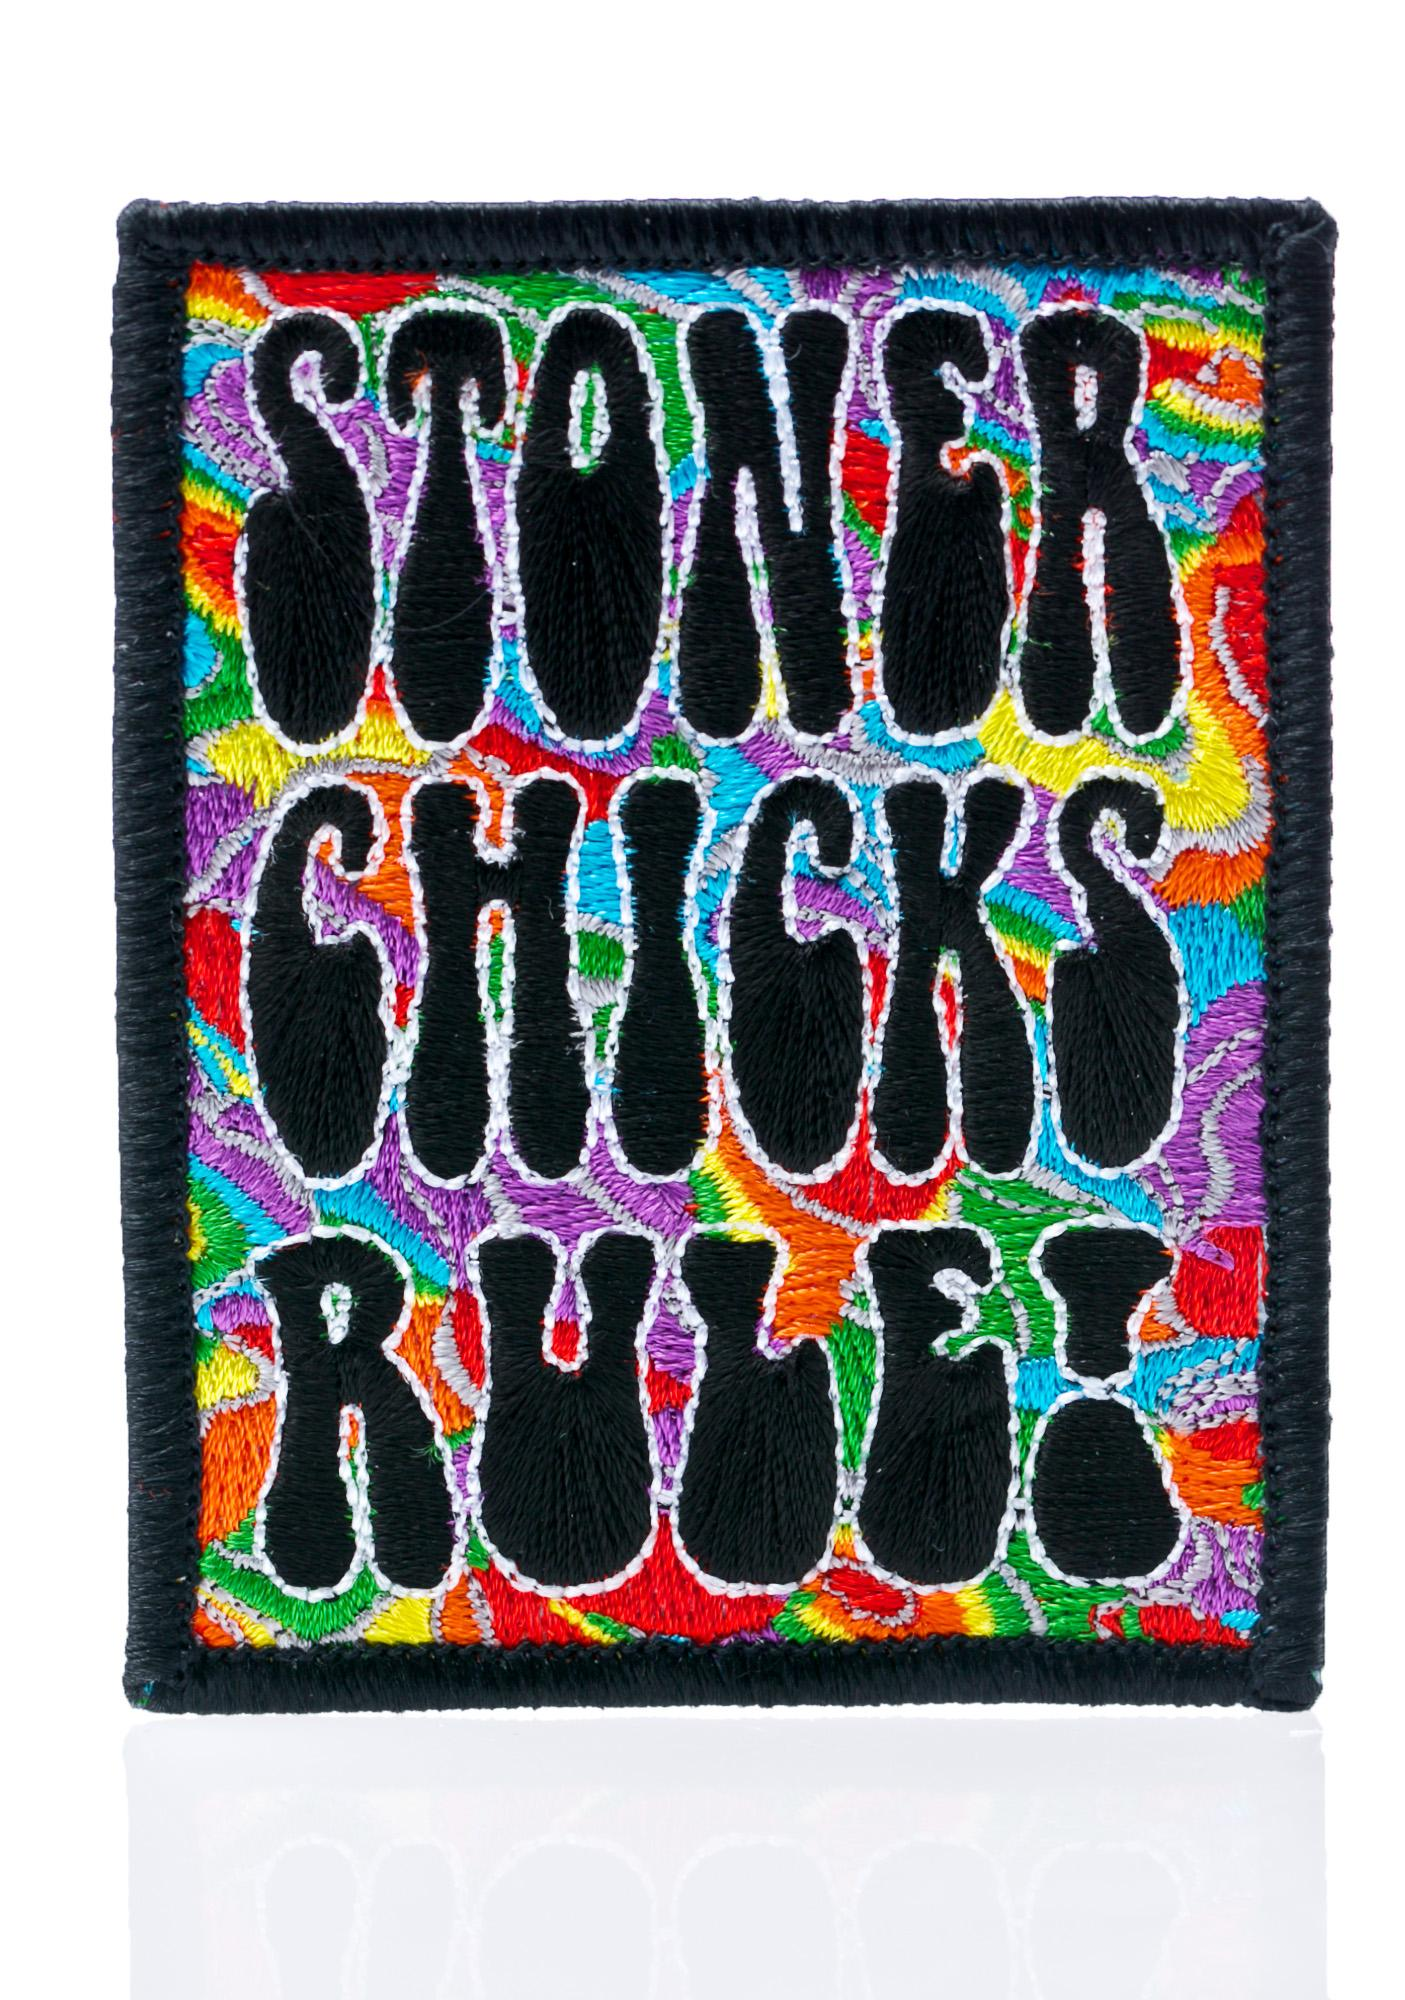 Stoner Chicks Patch